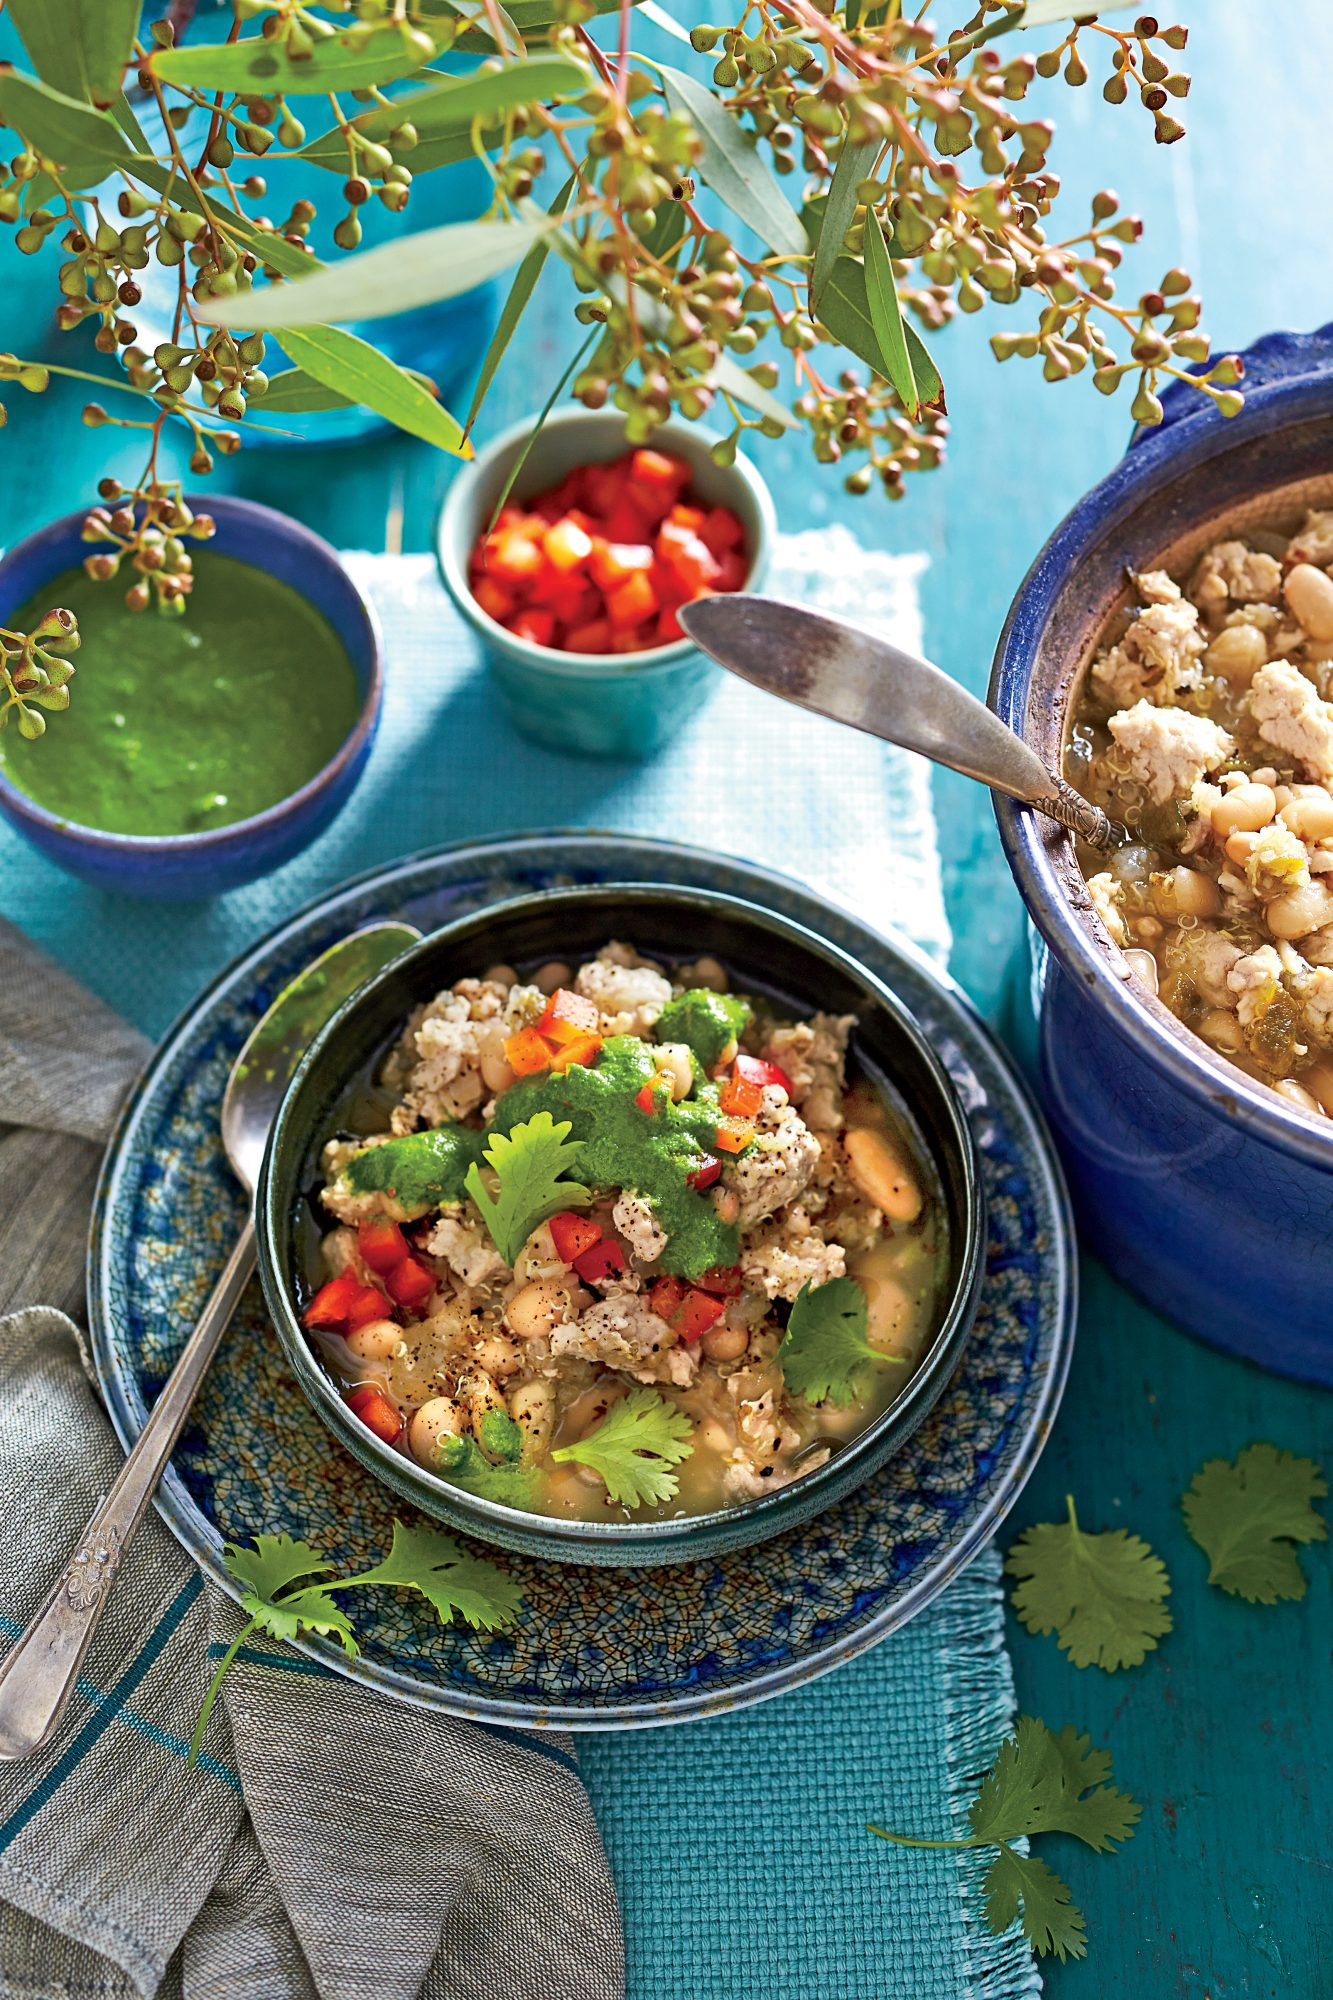 Slow-Cooker Turkey Chili with Quinoa Recipe